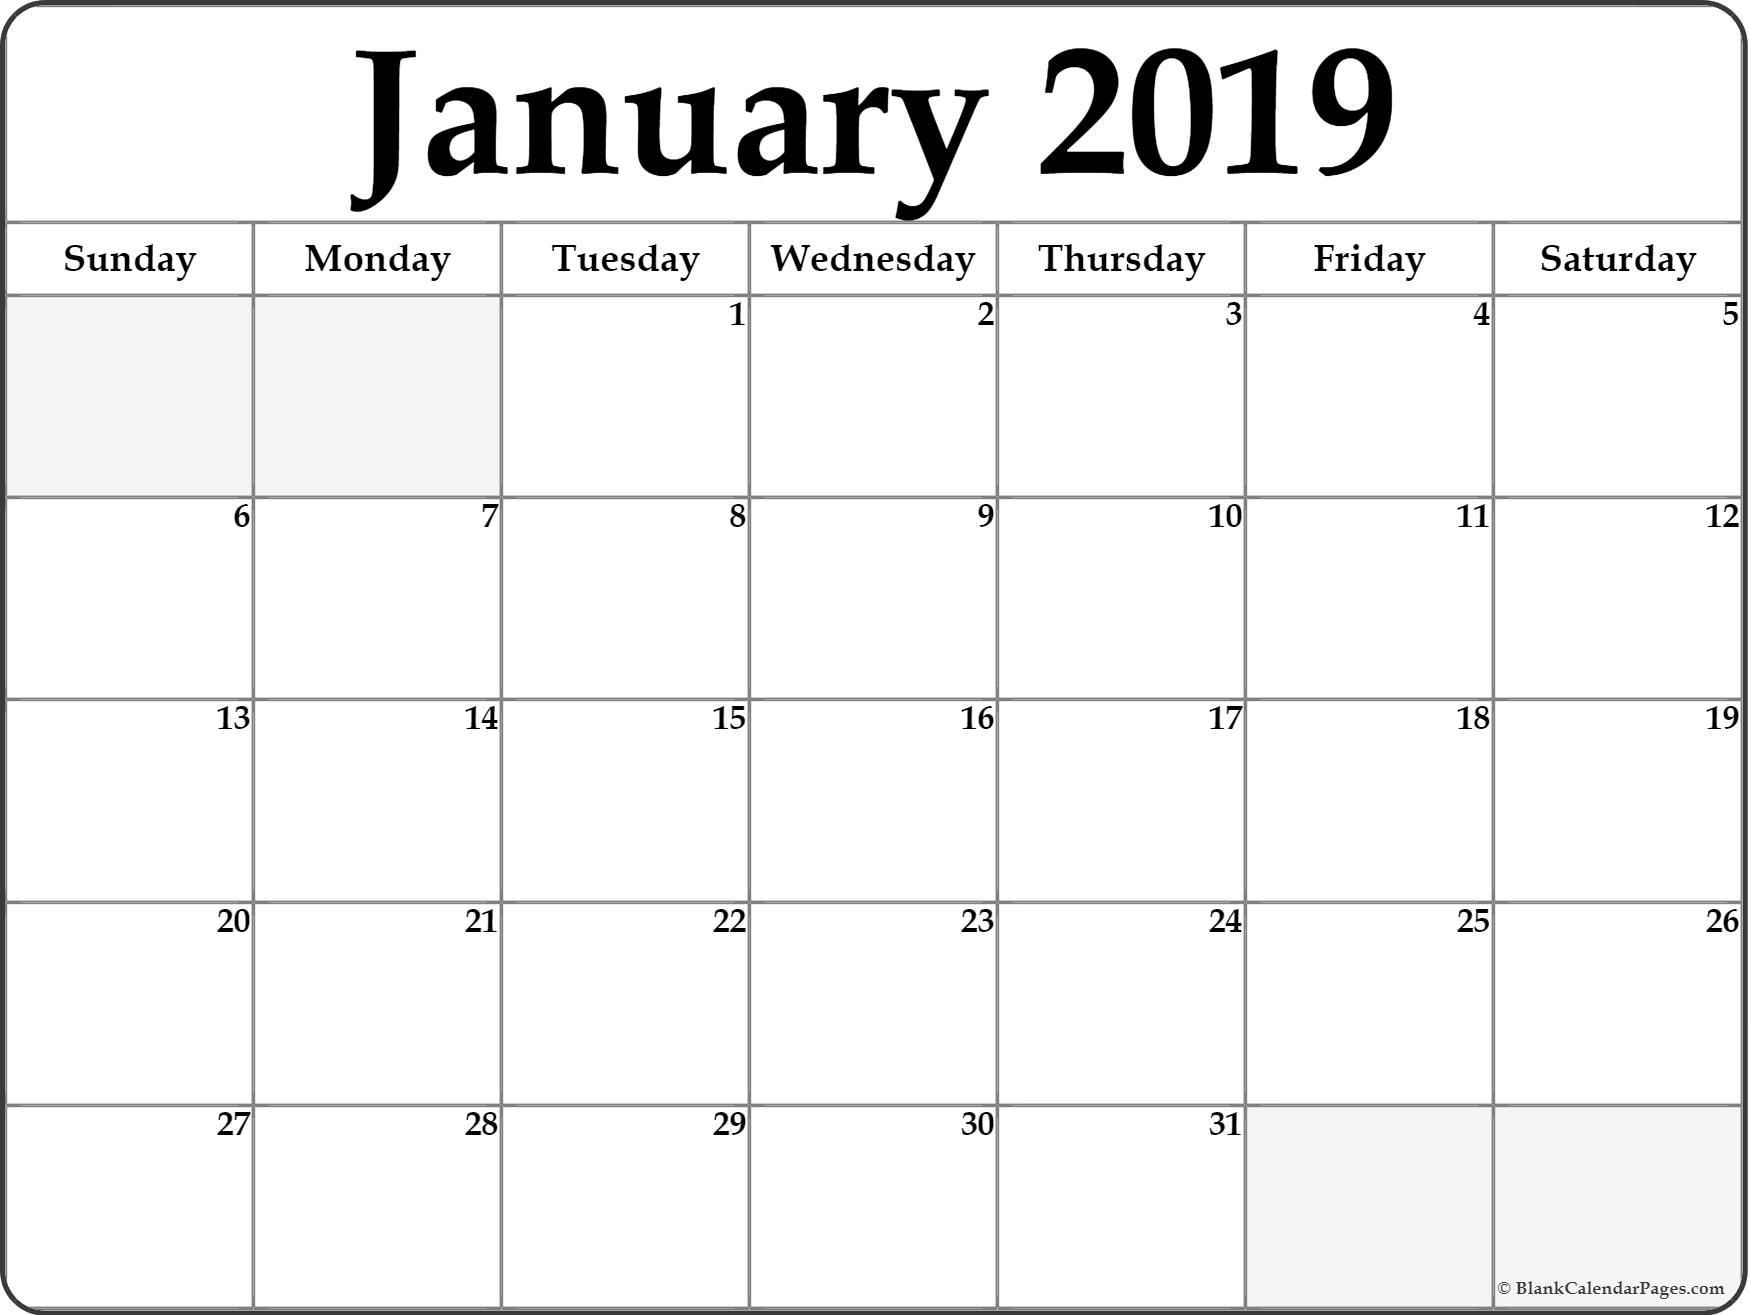 Calendar January 2019 Template Cablo Commongroundsapex Co